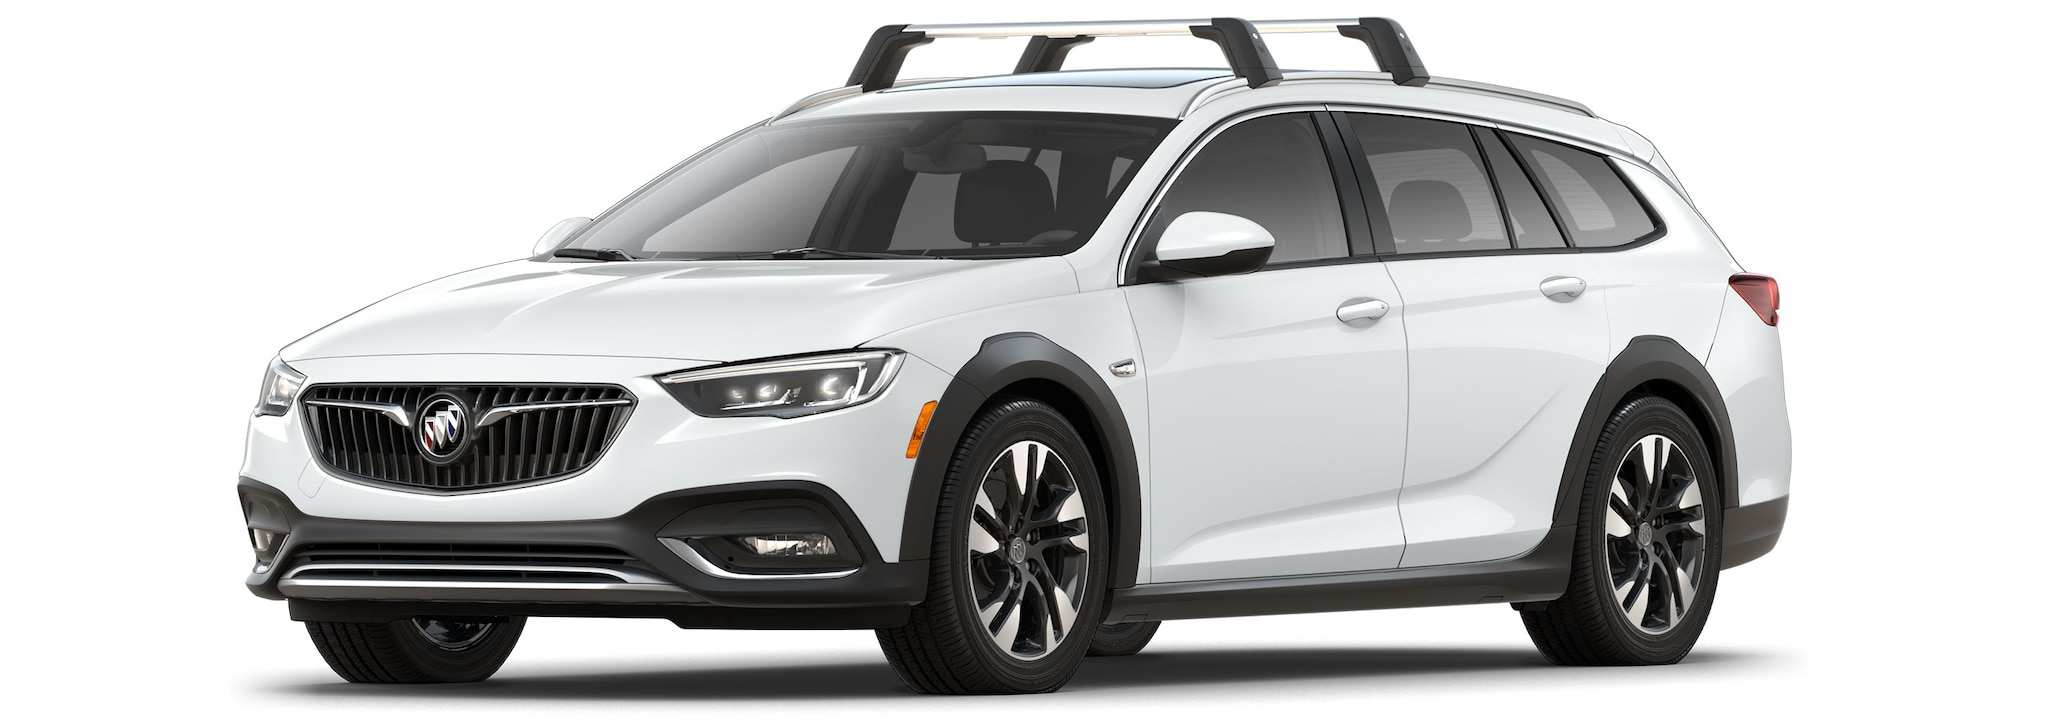 13 Best Review 2020 Buick Estate Wagon Ratings for 2020 Buick Estate Wagon